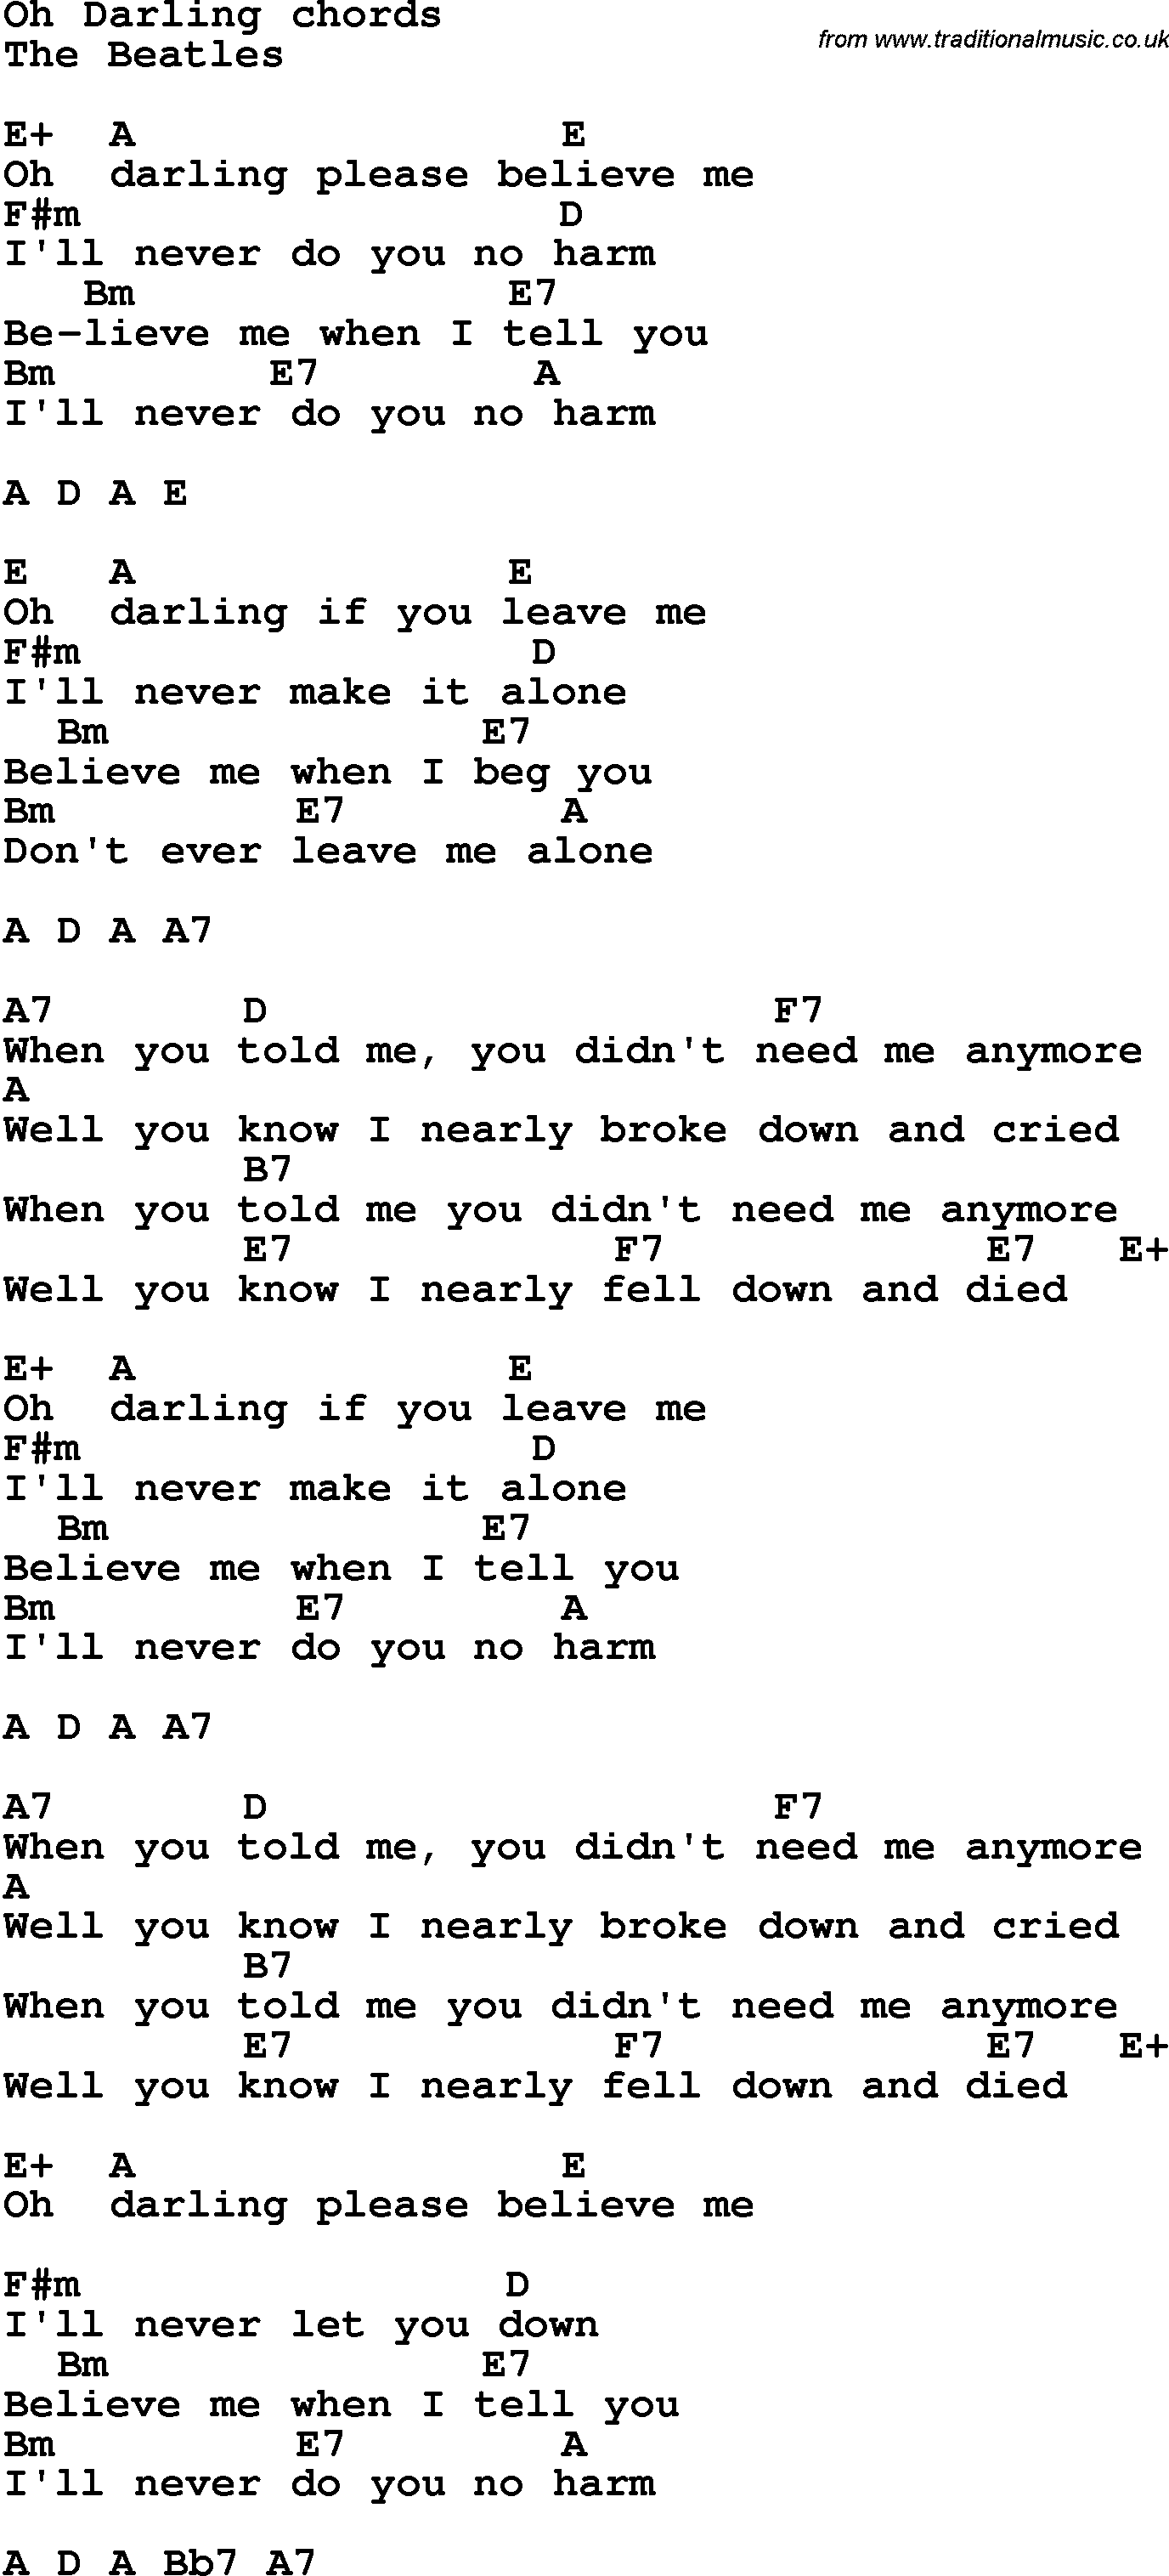 Song Lyrics With Guitar Chords For Oh Darling The Beatles